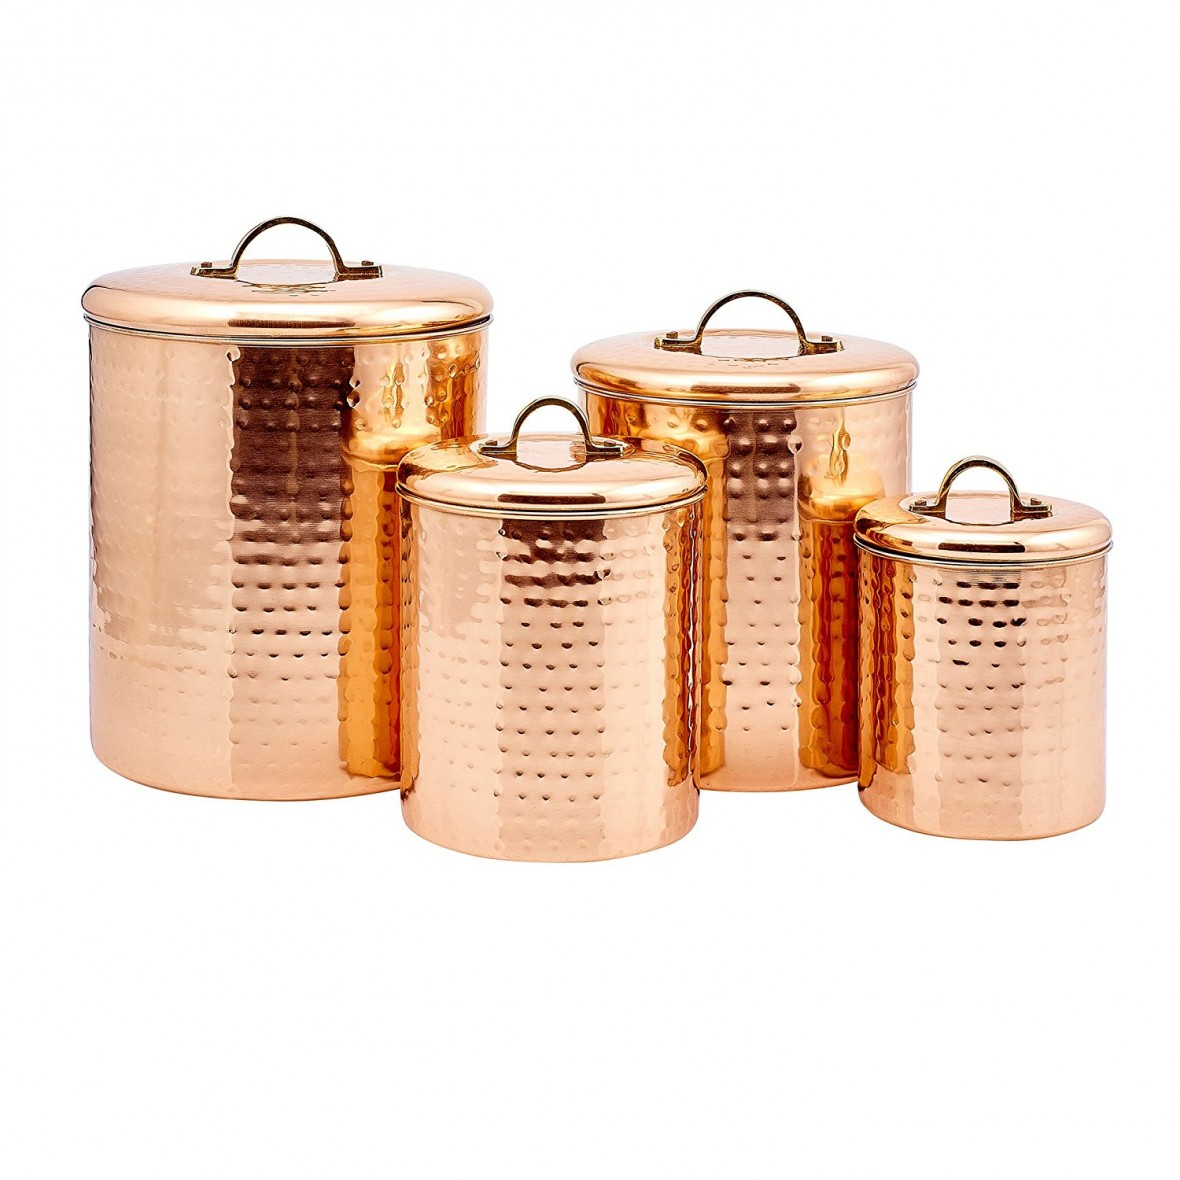 Hostess Gift Idea - Copper Canister Set